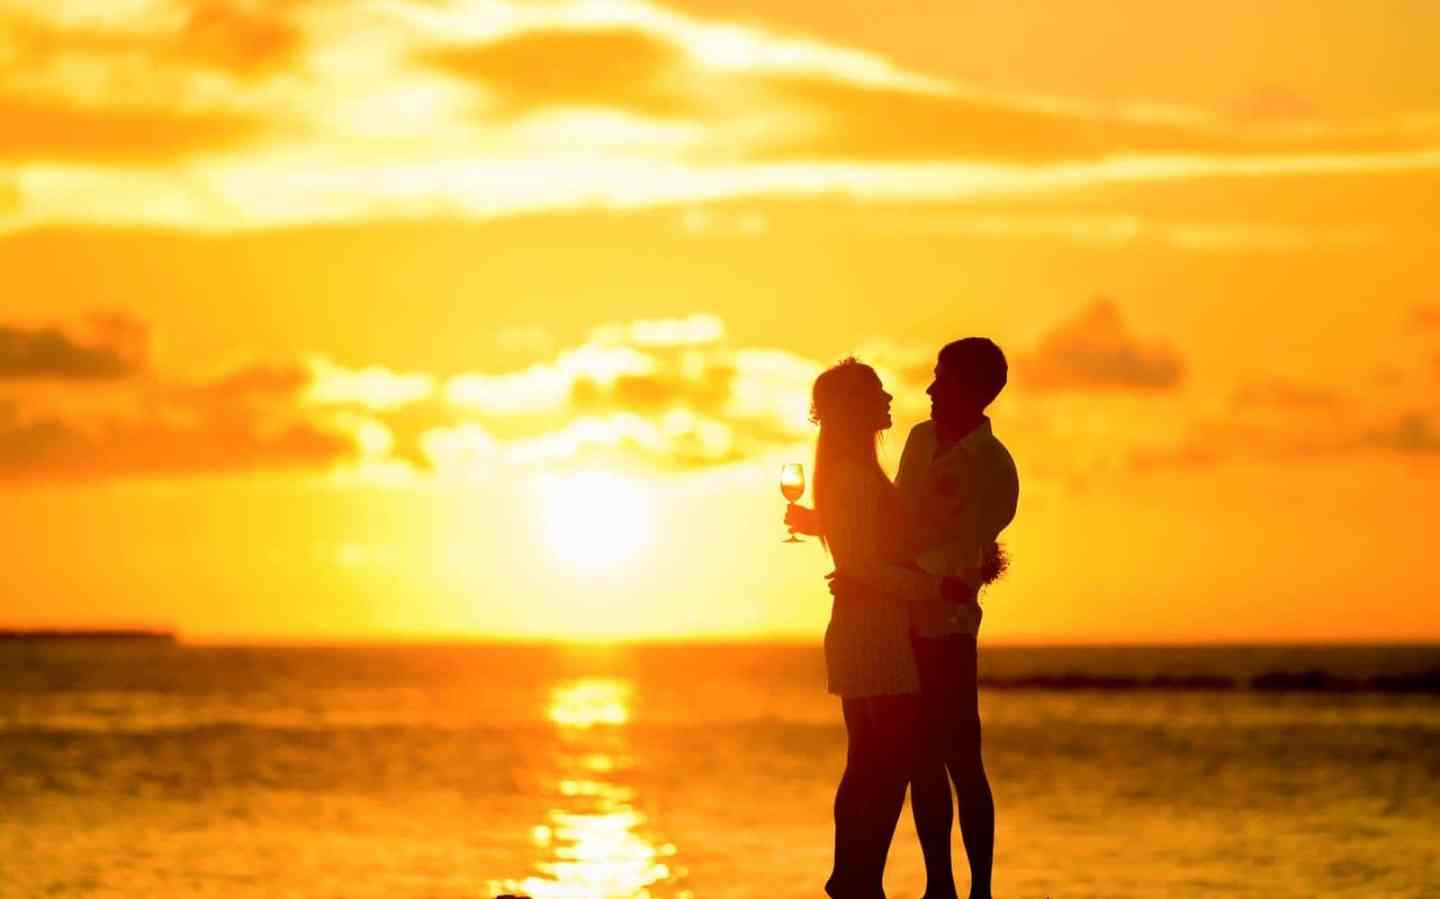 How Do You Know When You're Ready For The Next Step In Your Relationship?